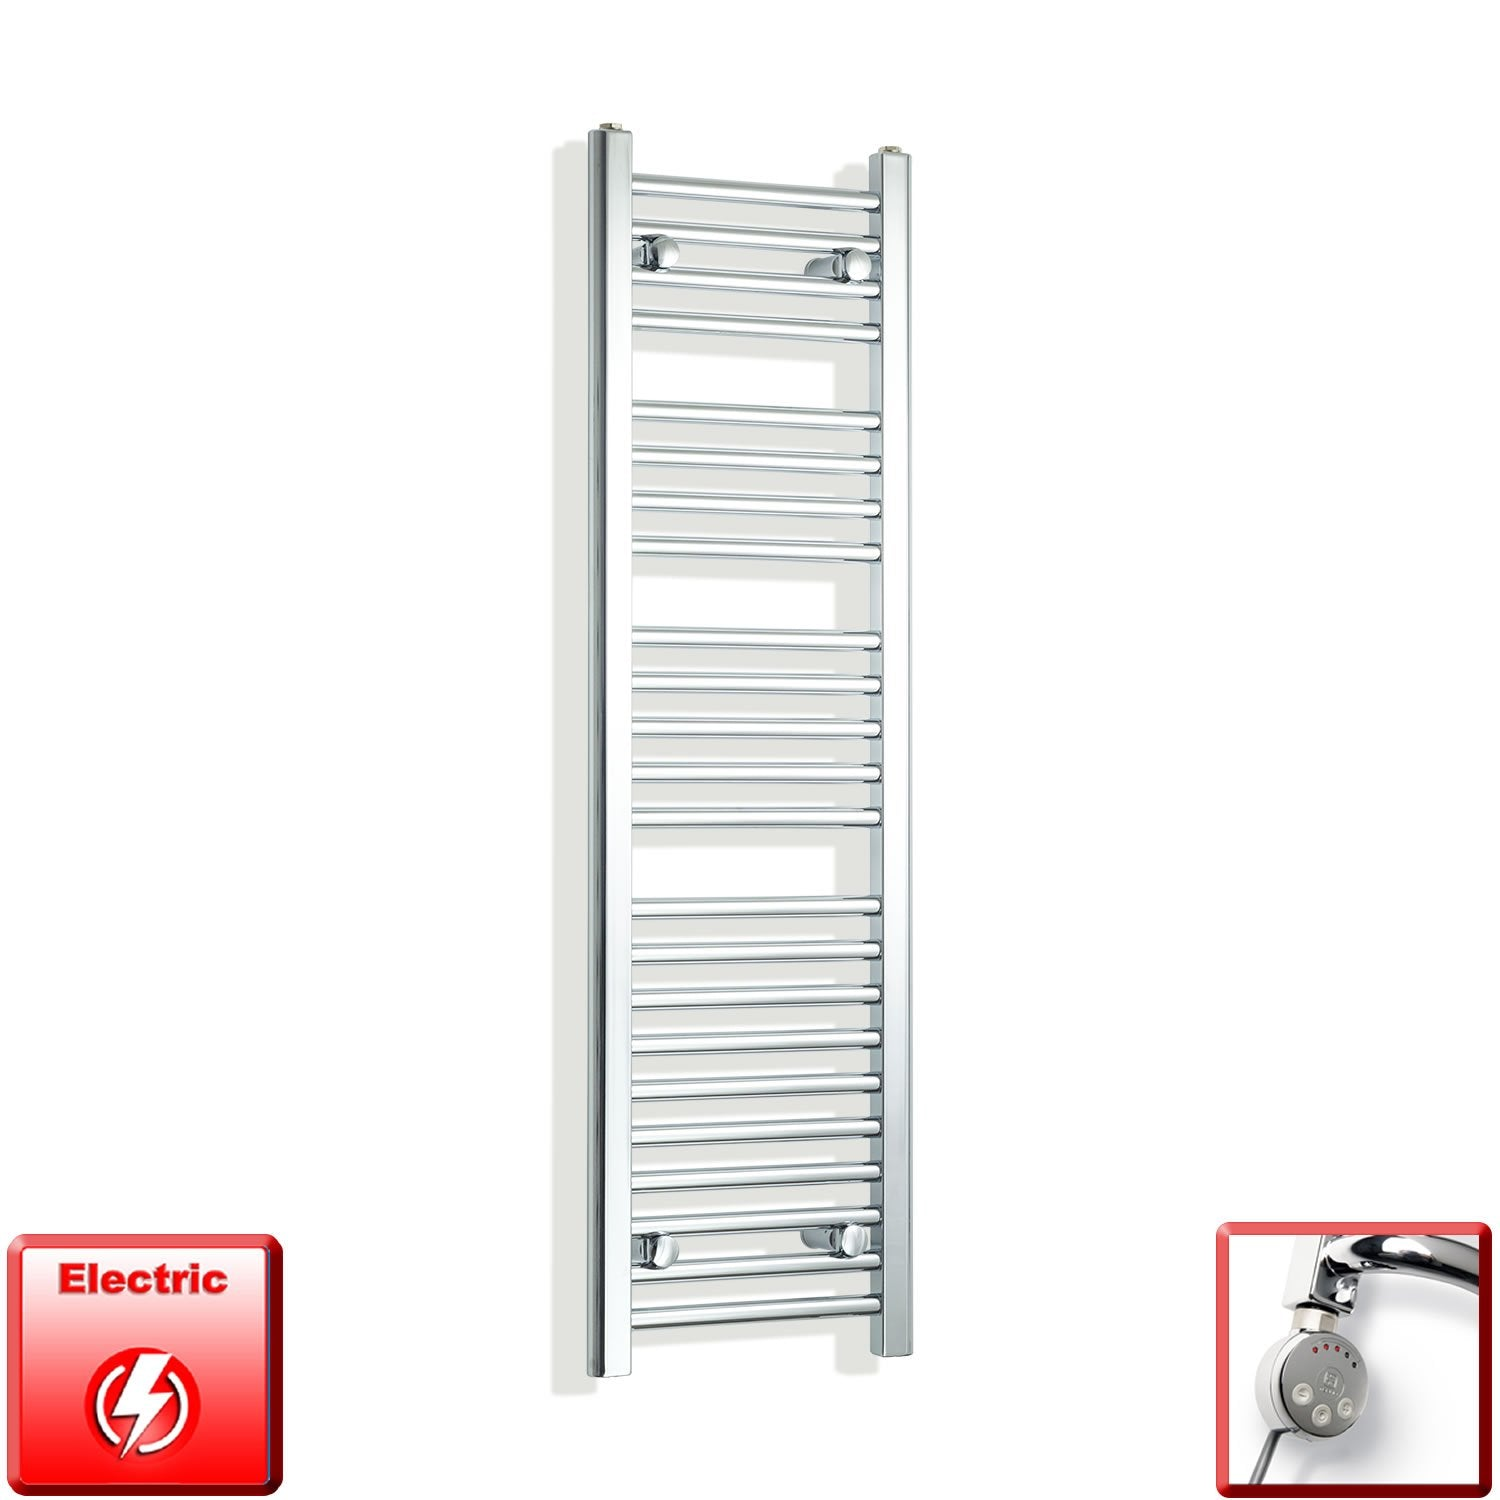 300mm Wide 1400mm High Flat Chrome Pre-Filled Electric Heated Towel Rail Radiator HTR,MEG Thermostatic Element